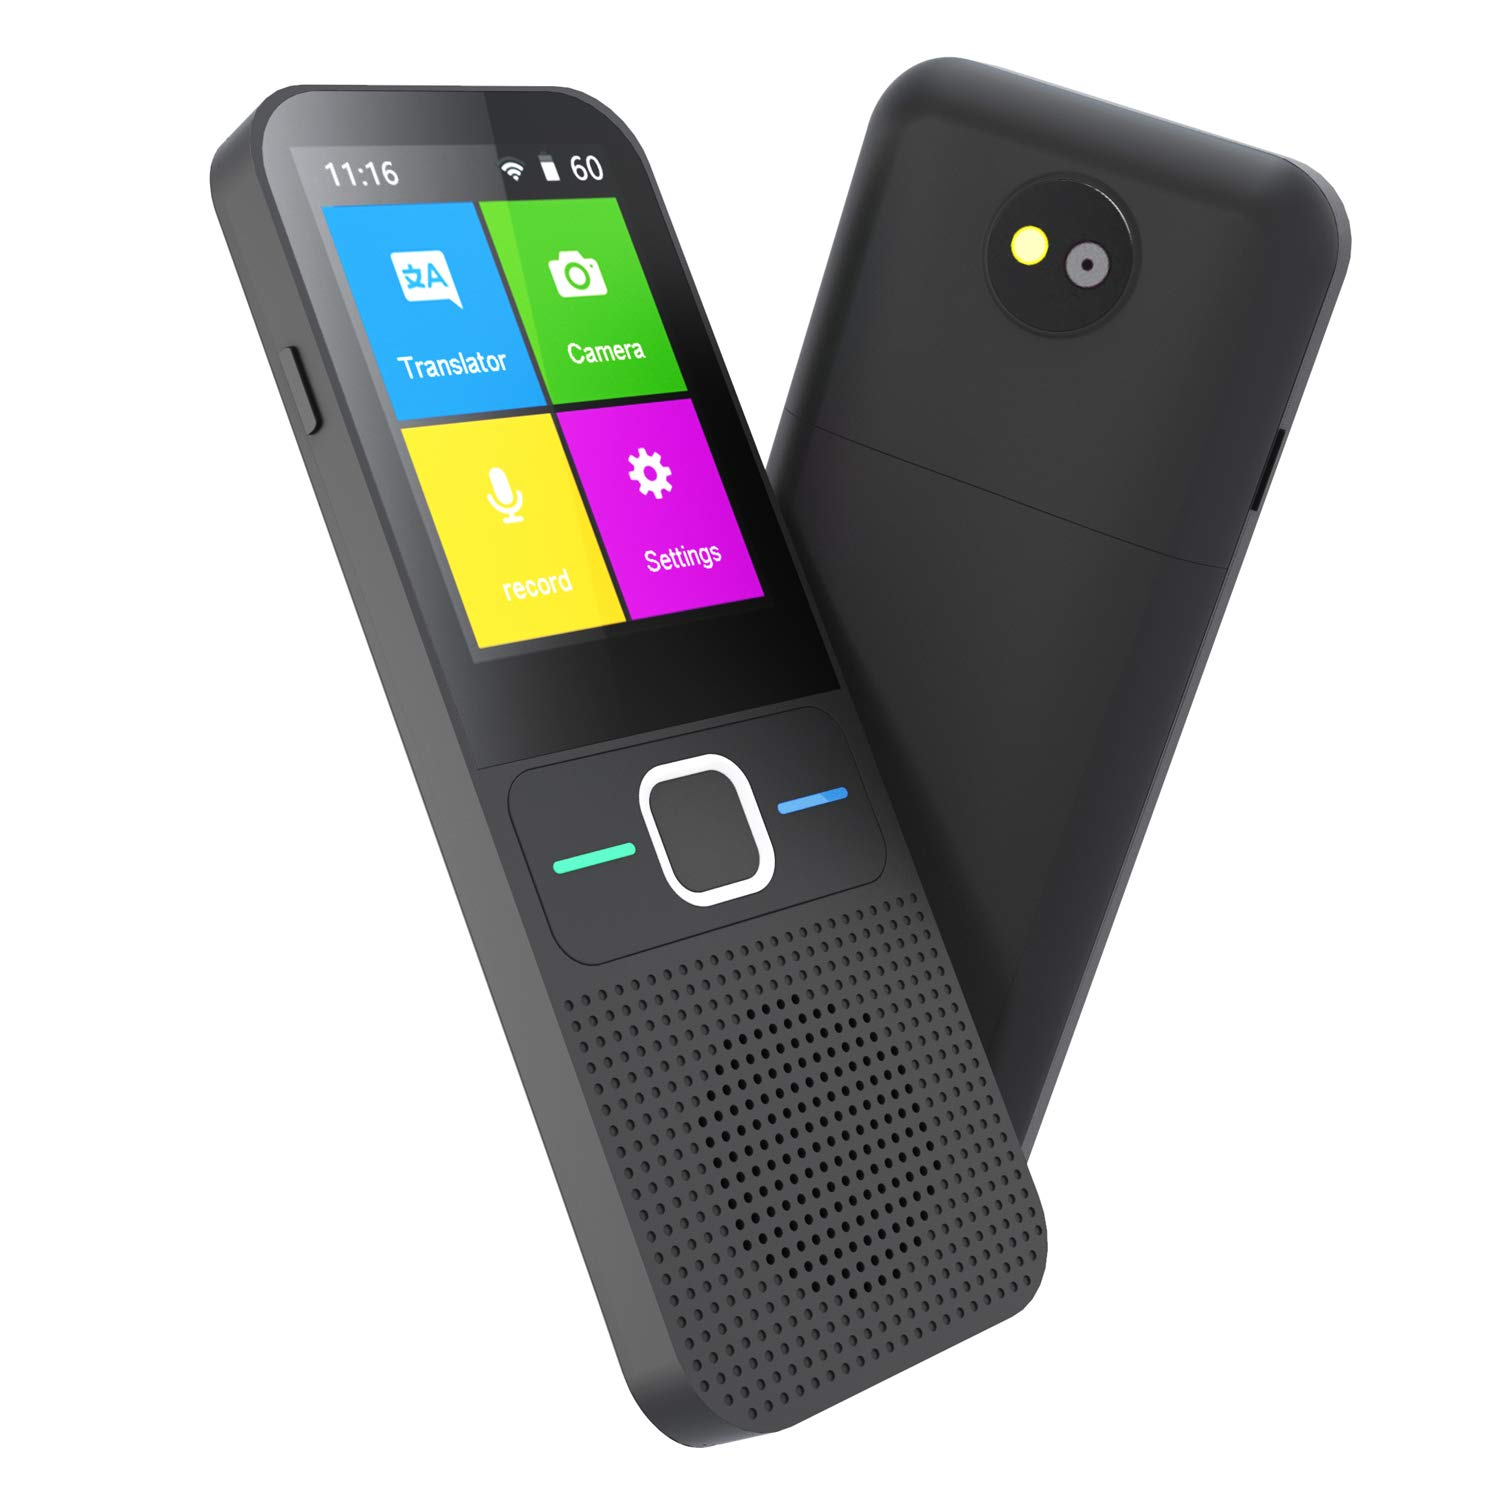 Language Translator Device Smart-JOYSAE Intelligent Two Way WiFi/Hotspot/Offline Instant 2.4 Inch Touch Screen Support 83 Languages Pocket Voice/Text/Recording/Photo Camera Translation Function, Black